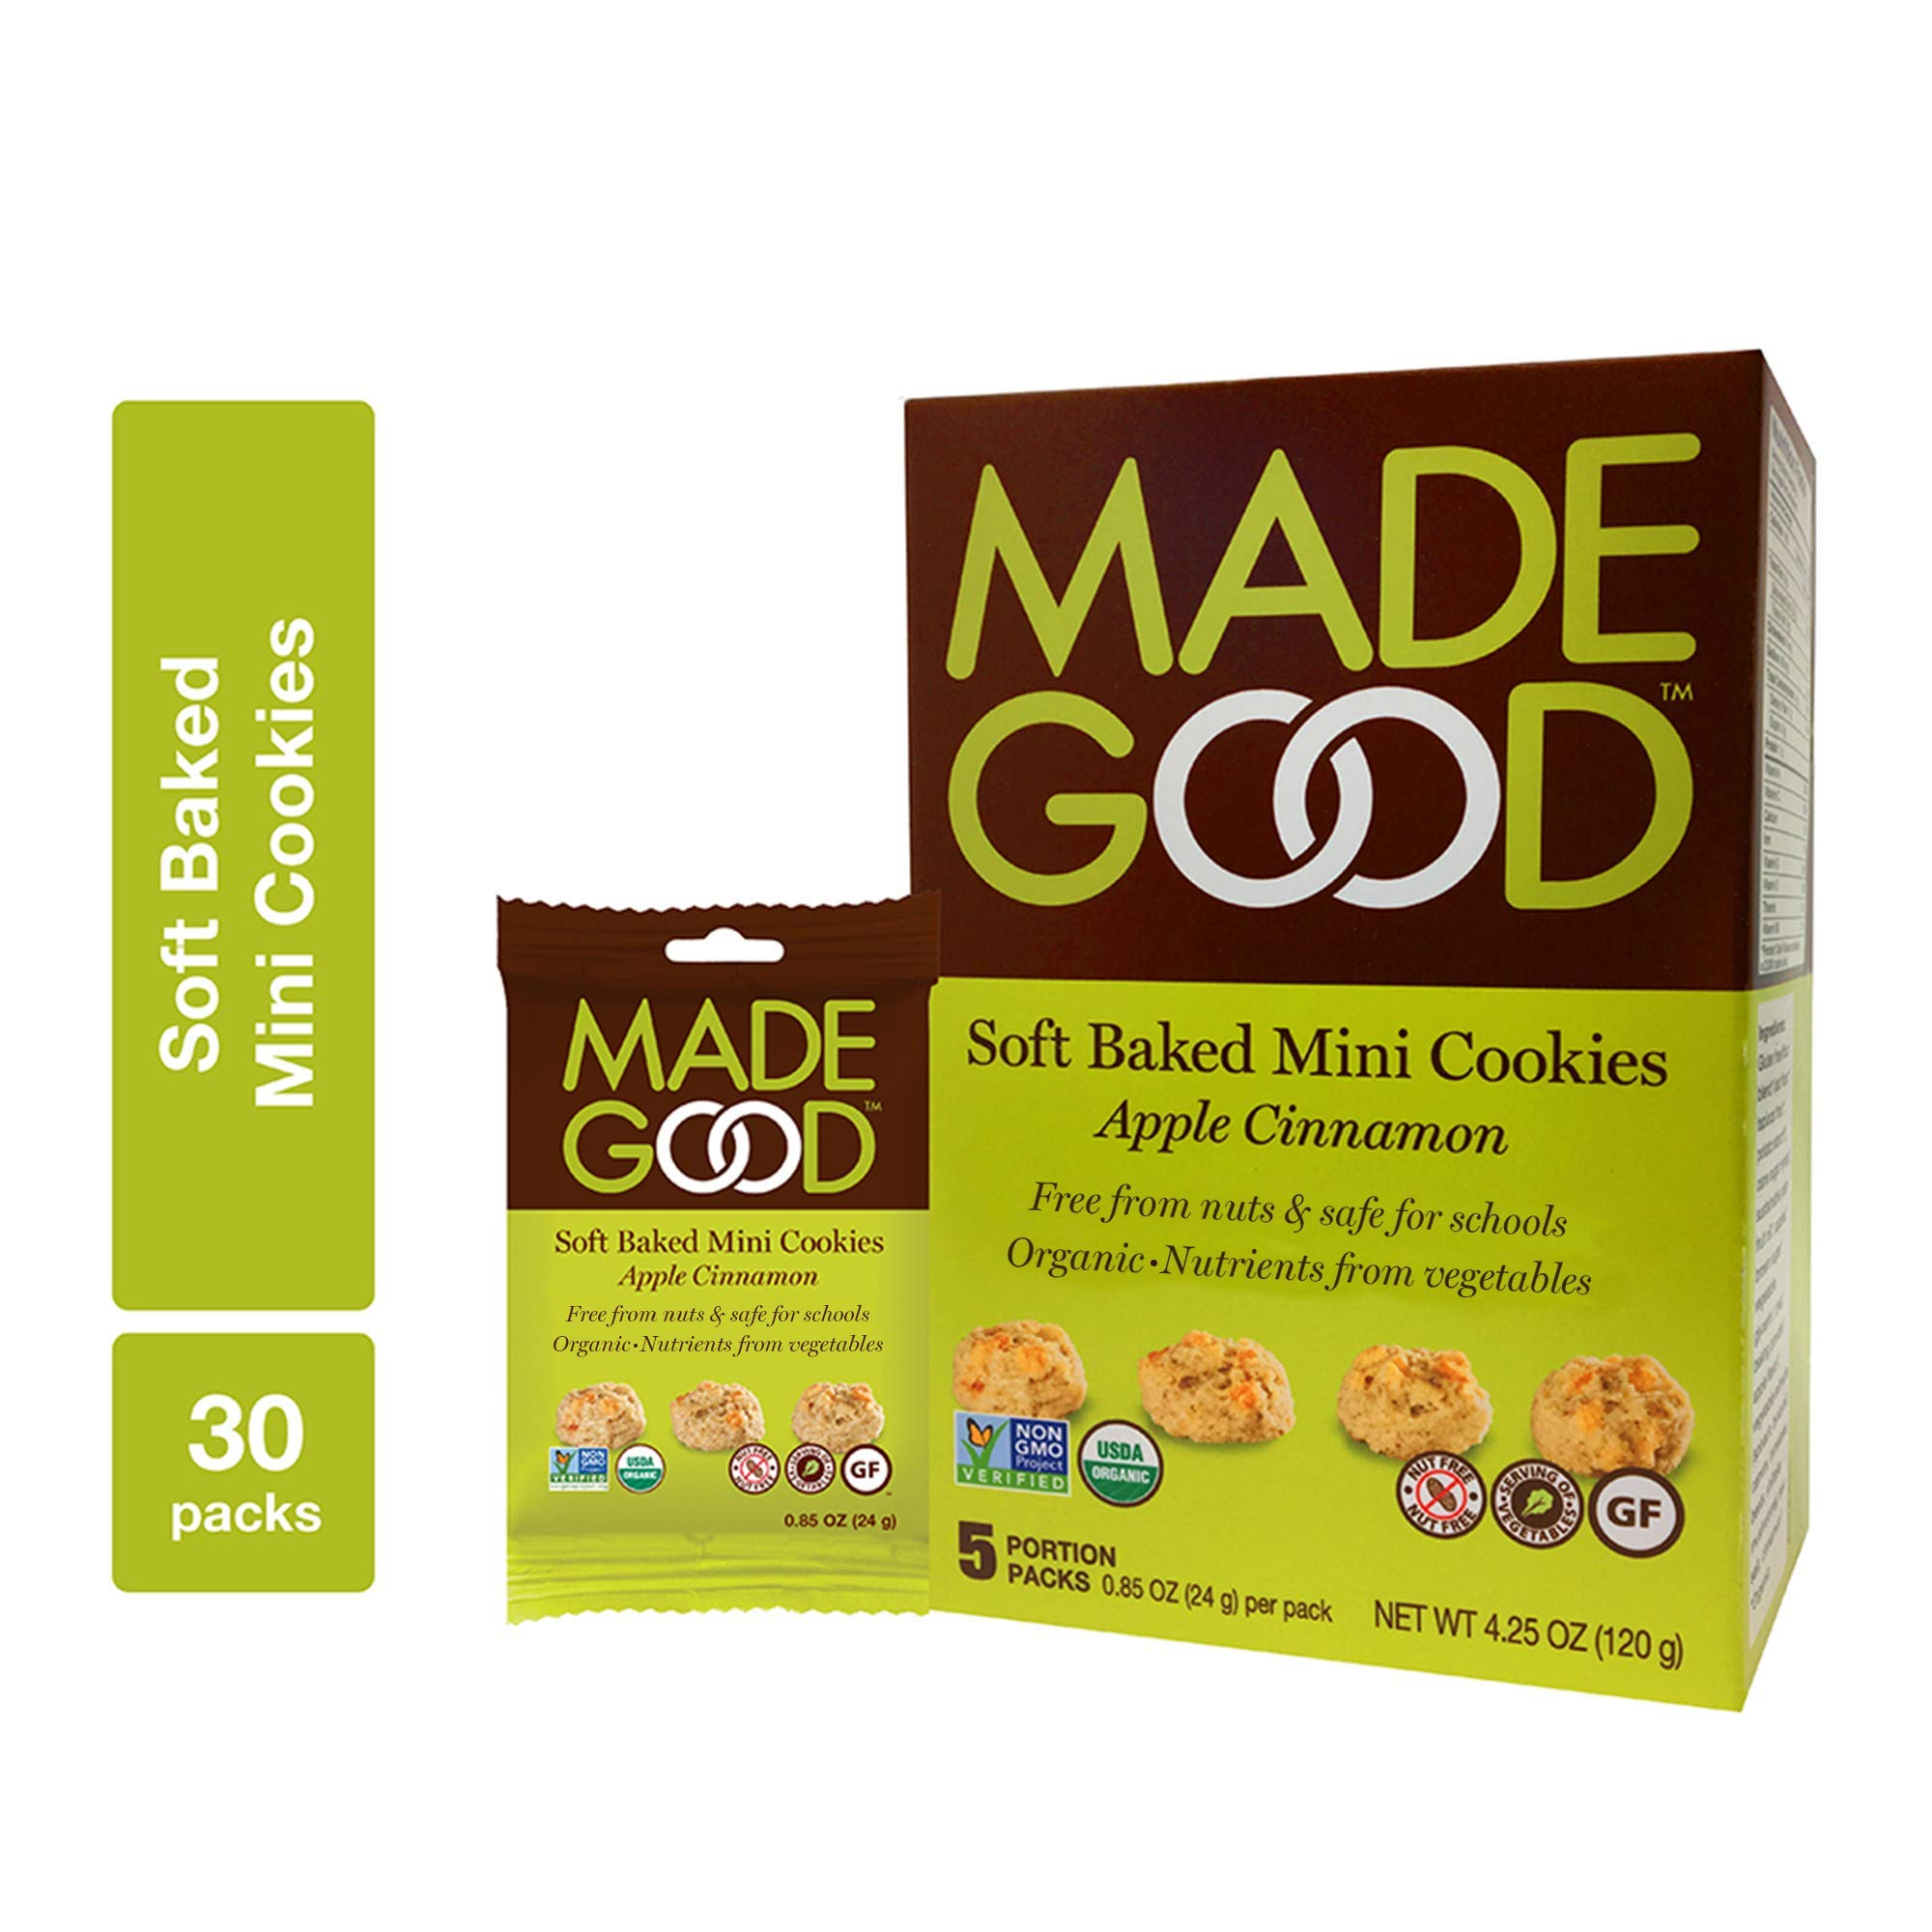 MadeGood Apple Cinnamon Soft Baked Mini Cookies, 6 boxes (30 ct); With the Scrumptious Flavor of Homemade Apple Crisp, the Delicious Snacks Contain Organic, Non-GMO, Gluten Free Ingredients by Made Good